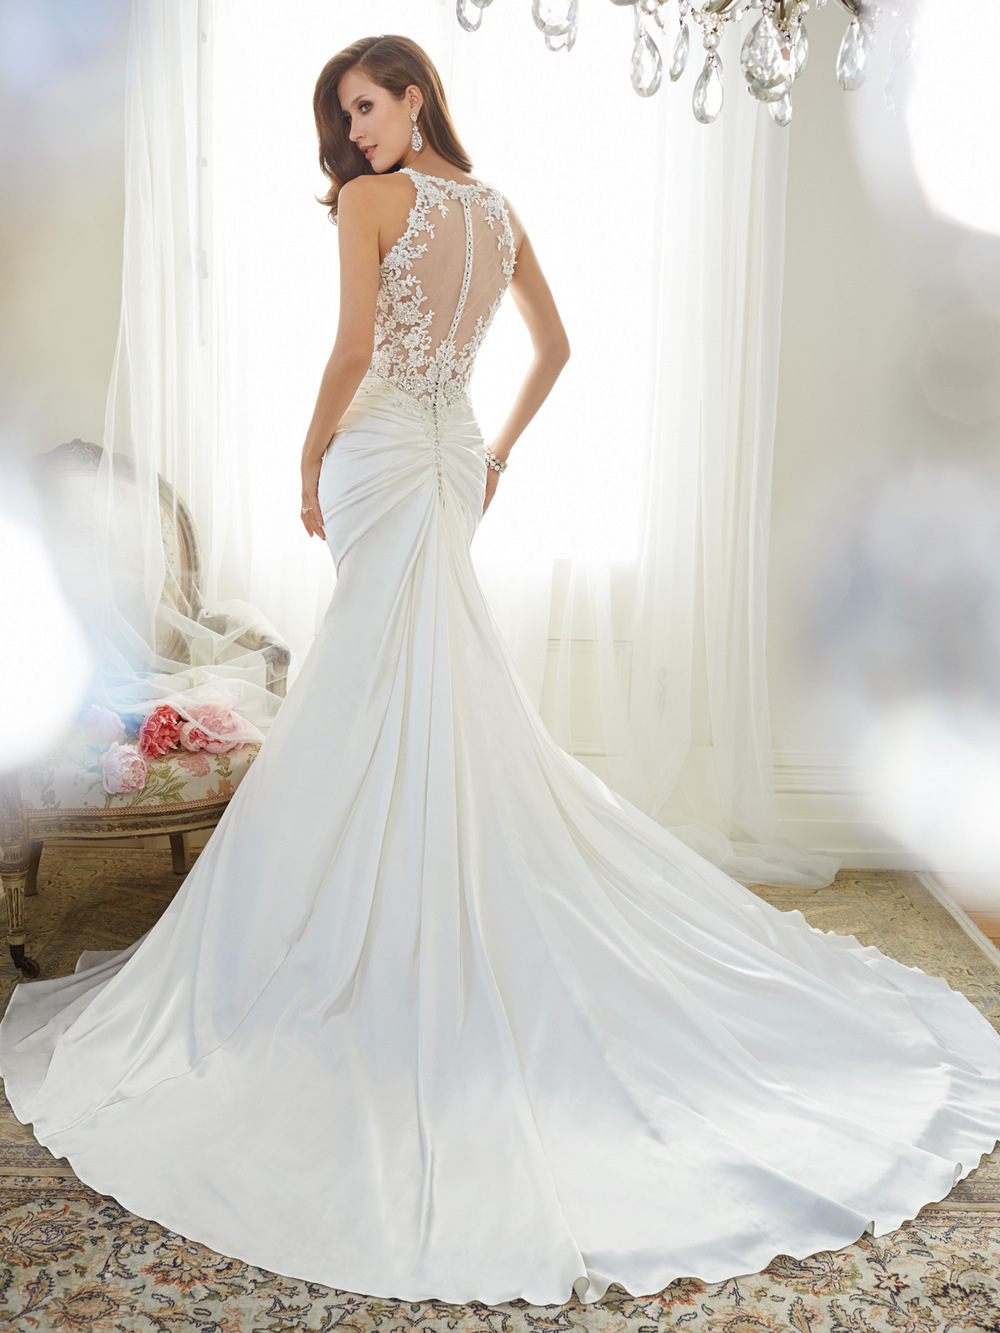 Mermaid Wedding Gown With Corset Back - Wedding Dress Ideas